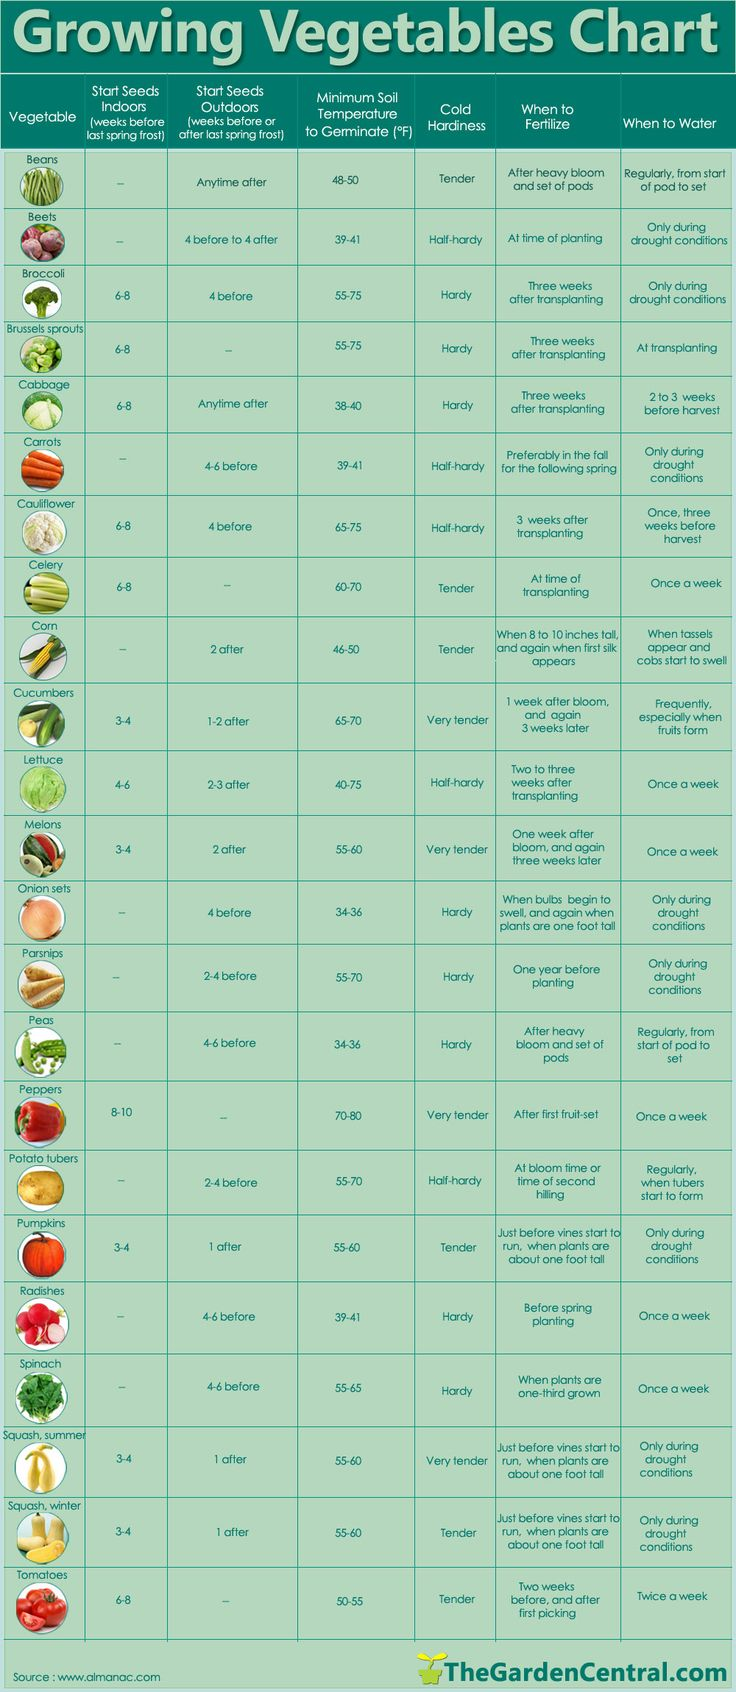 Good info on growing your own veggies! Some are great for the desert while others not so much..... Choose the best for our climate ( or your favorites ) and start growung today! In no time you will have fresh organic veggies for your table.